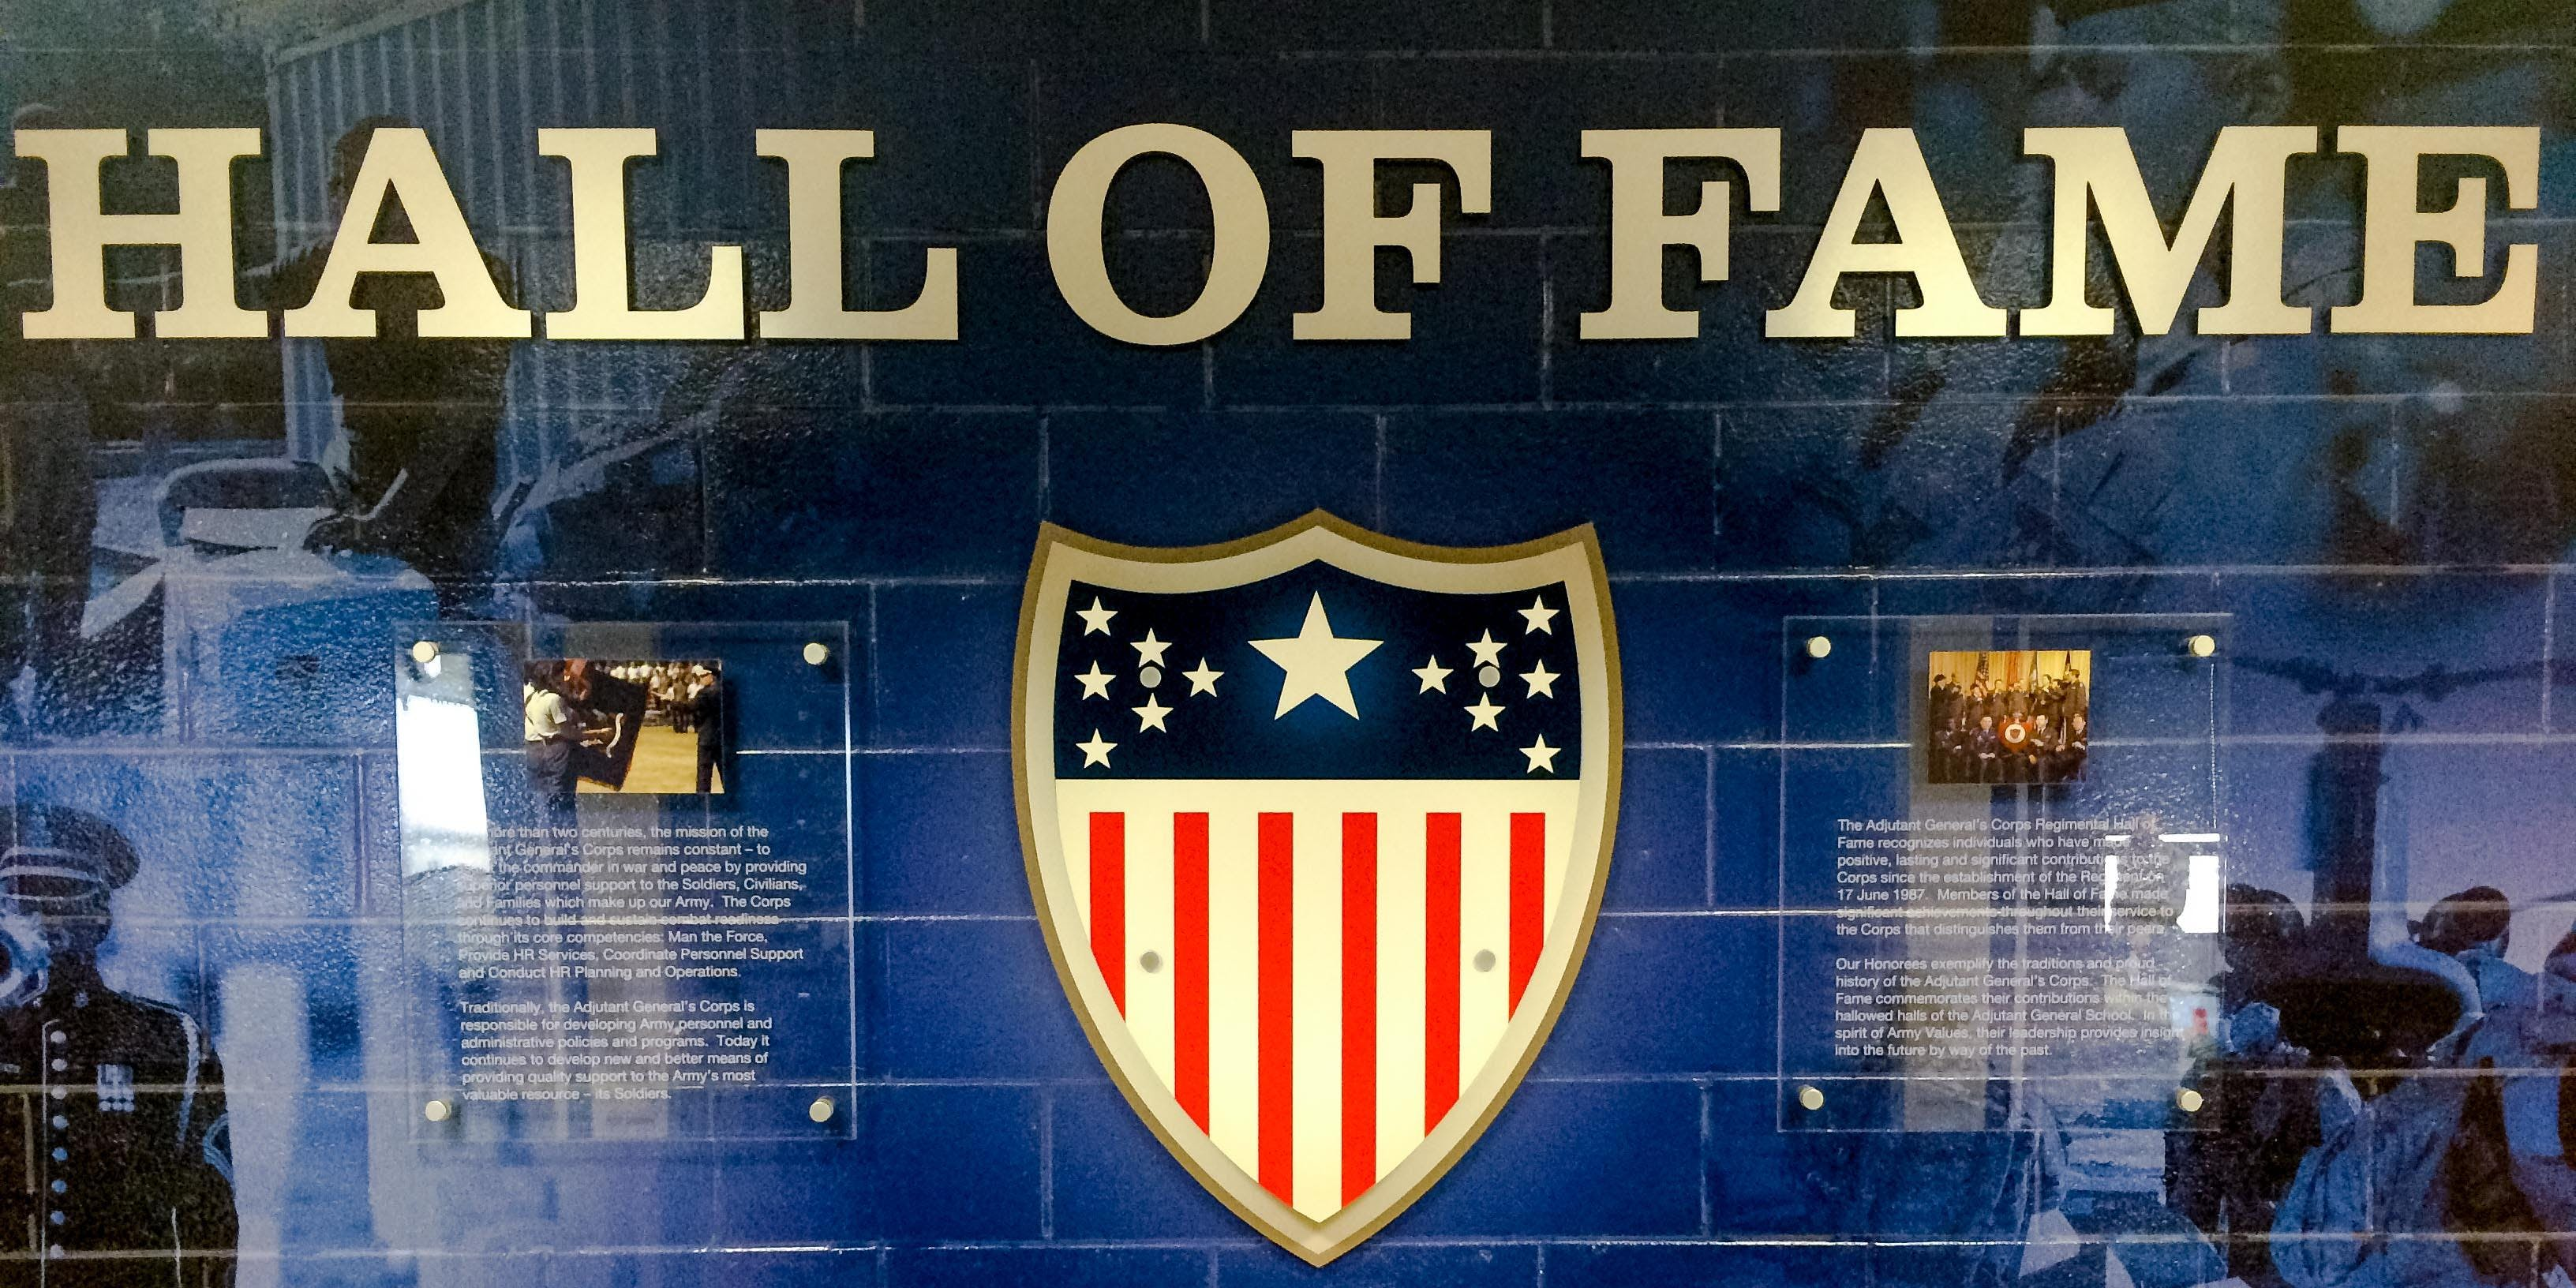 AG Hall of Fame